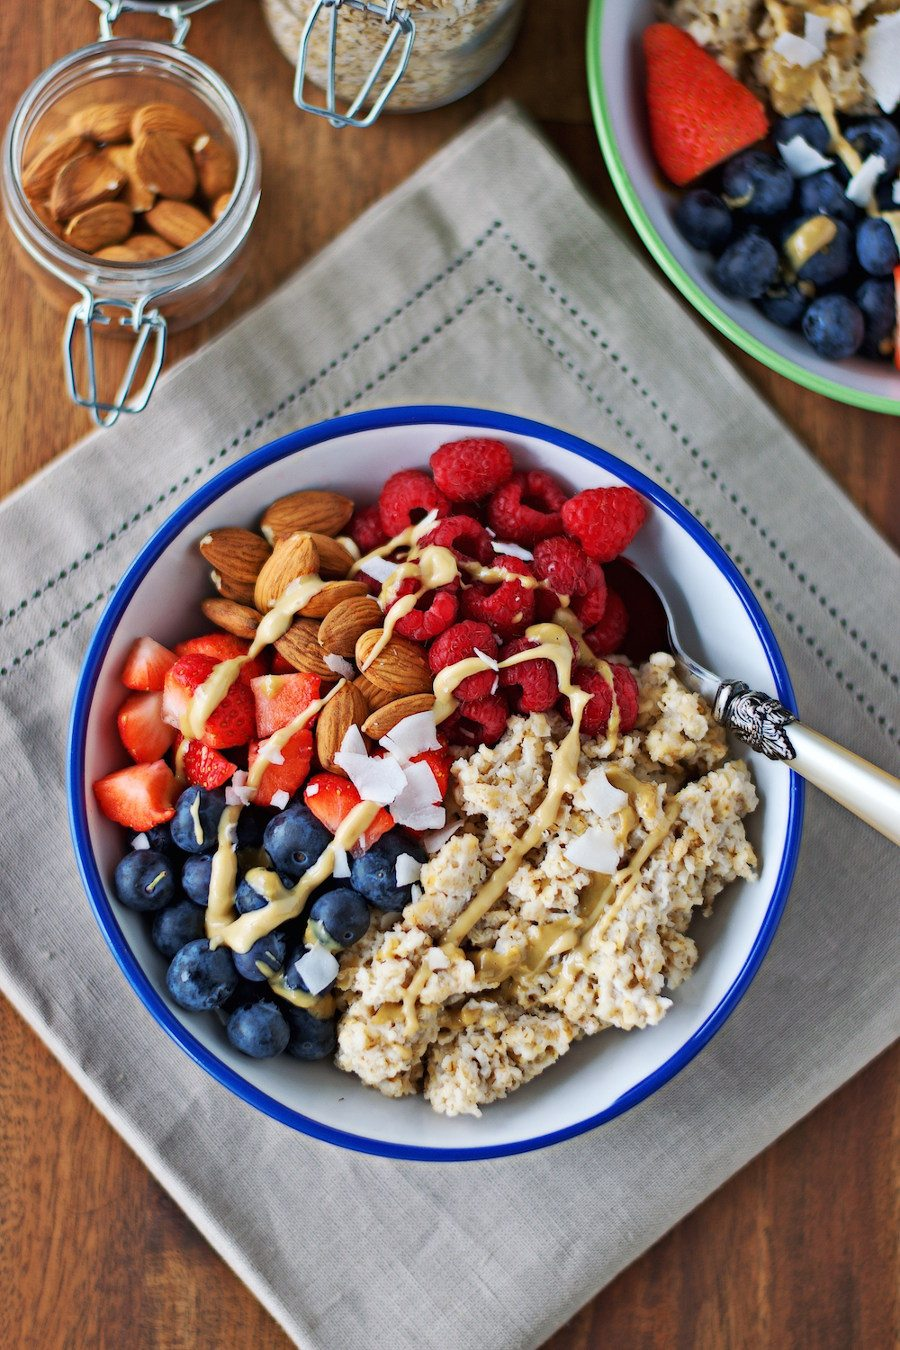 Top view of one Breakfast Bowl with fresh fruits and nuts, with a spoon at the side.